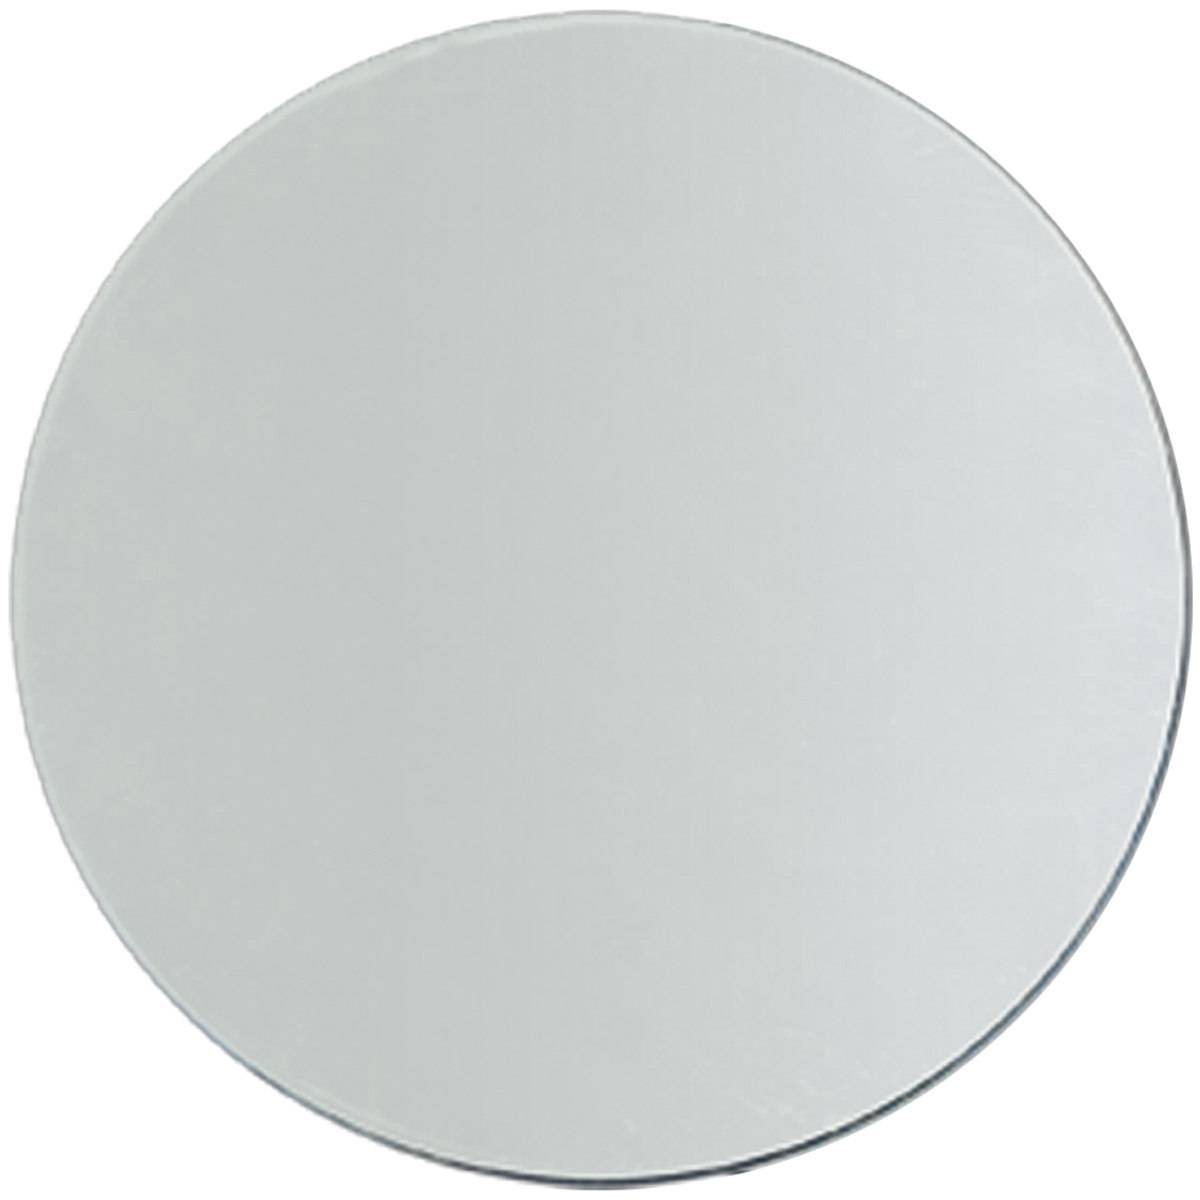 Large Round Mirrors In Large Round Black Mirrors (View 12 of 15)